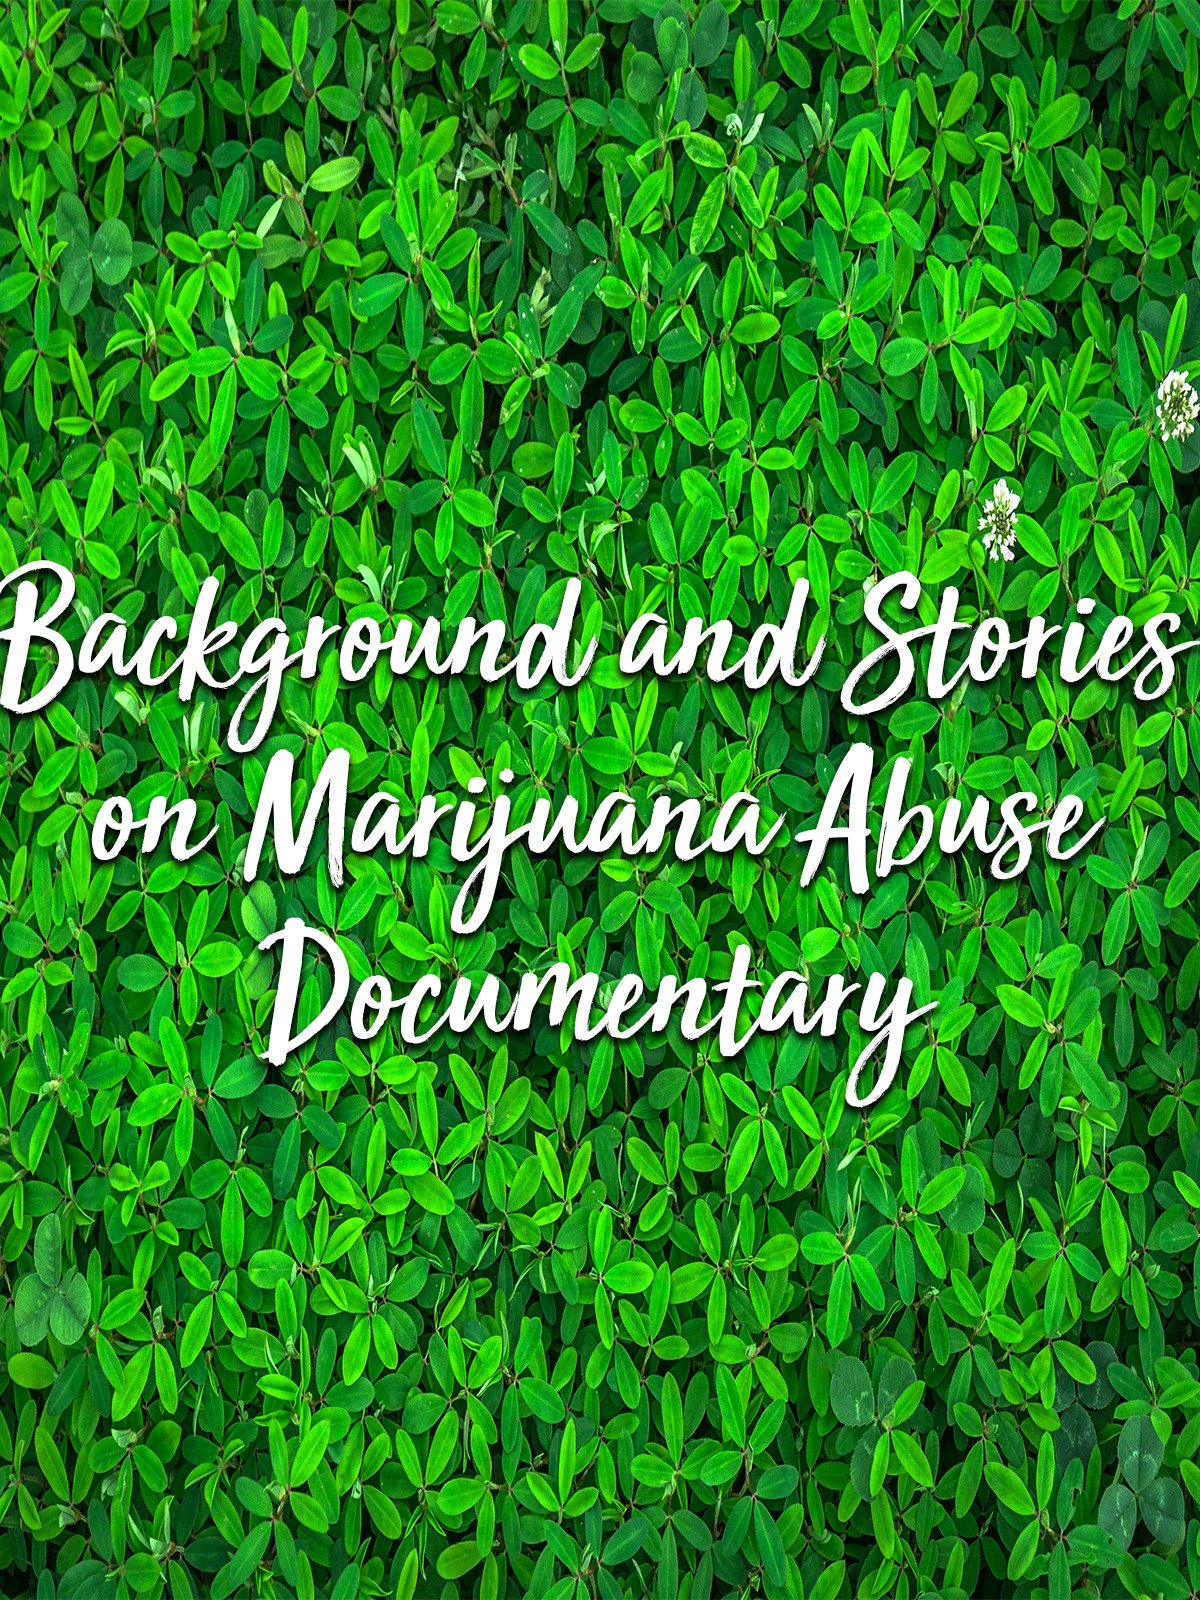 Background and Stories on Marijuana Abuse Documentary